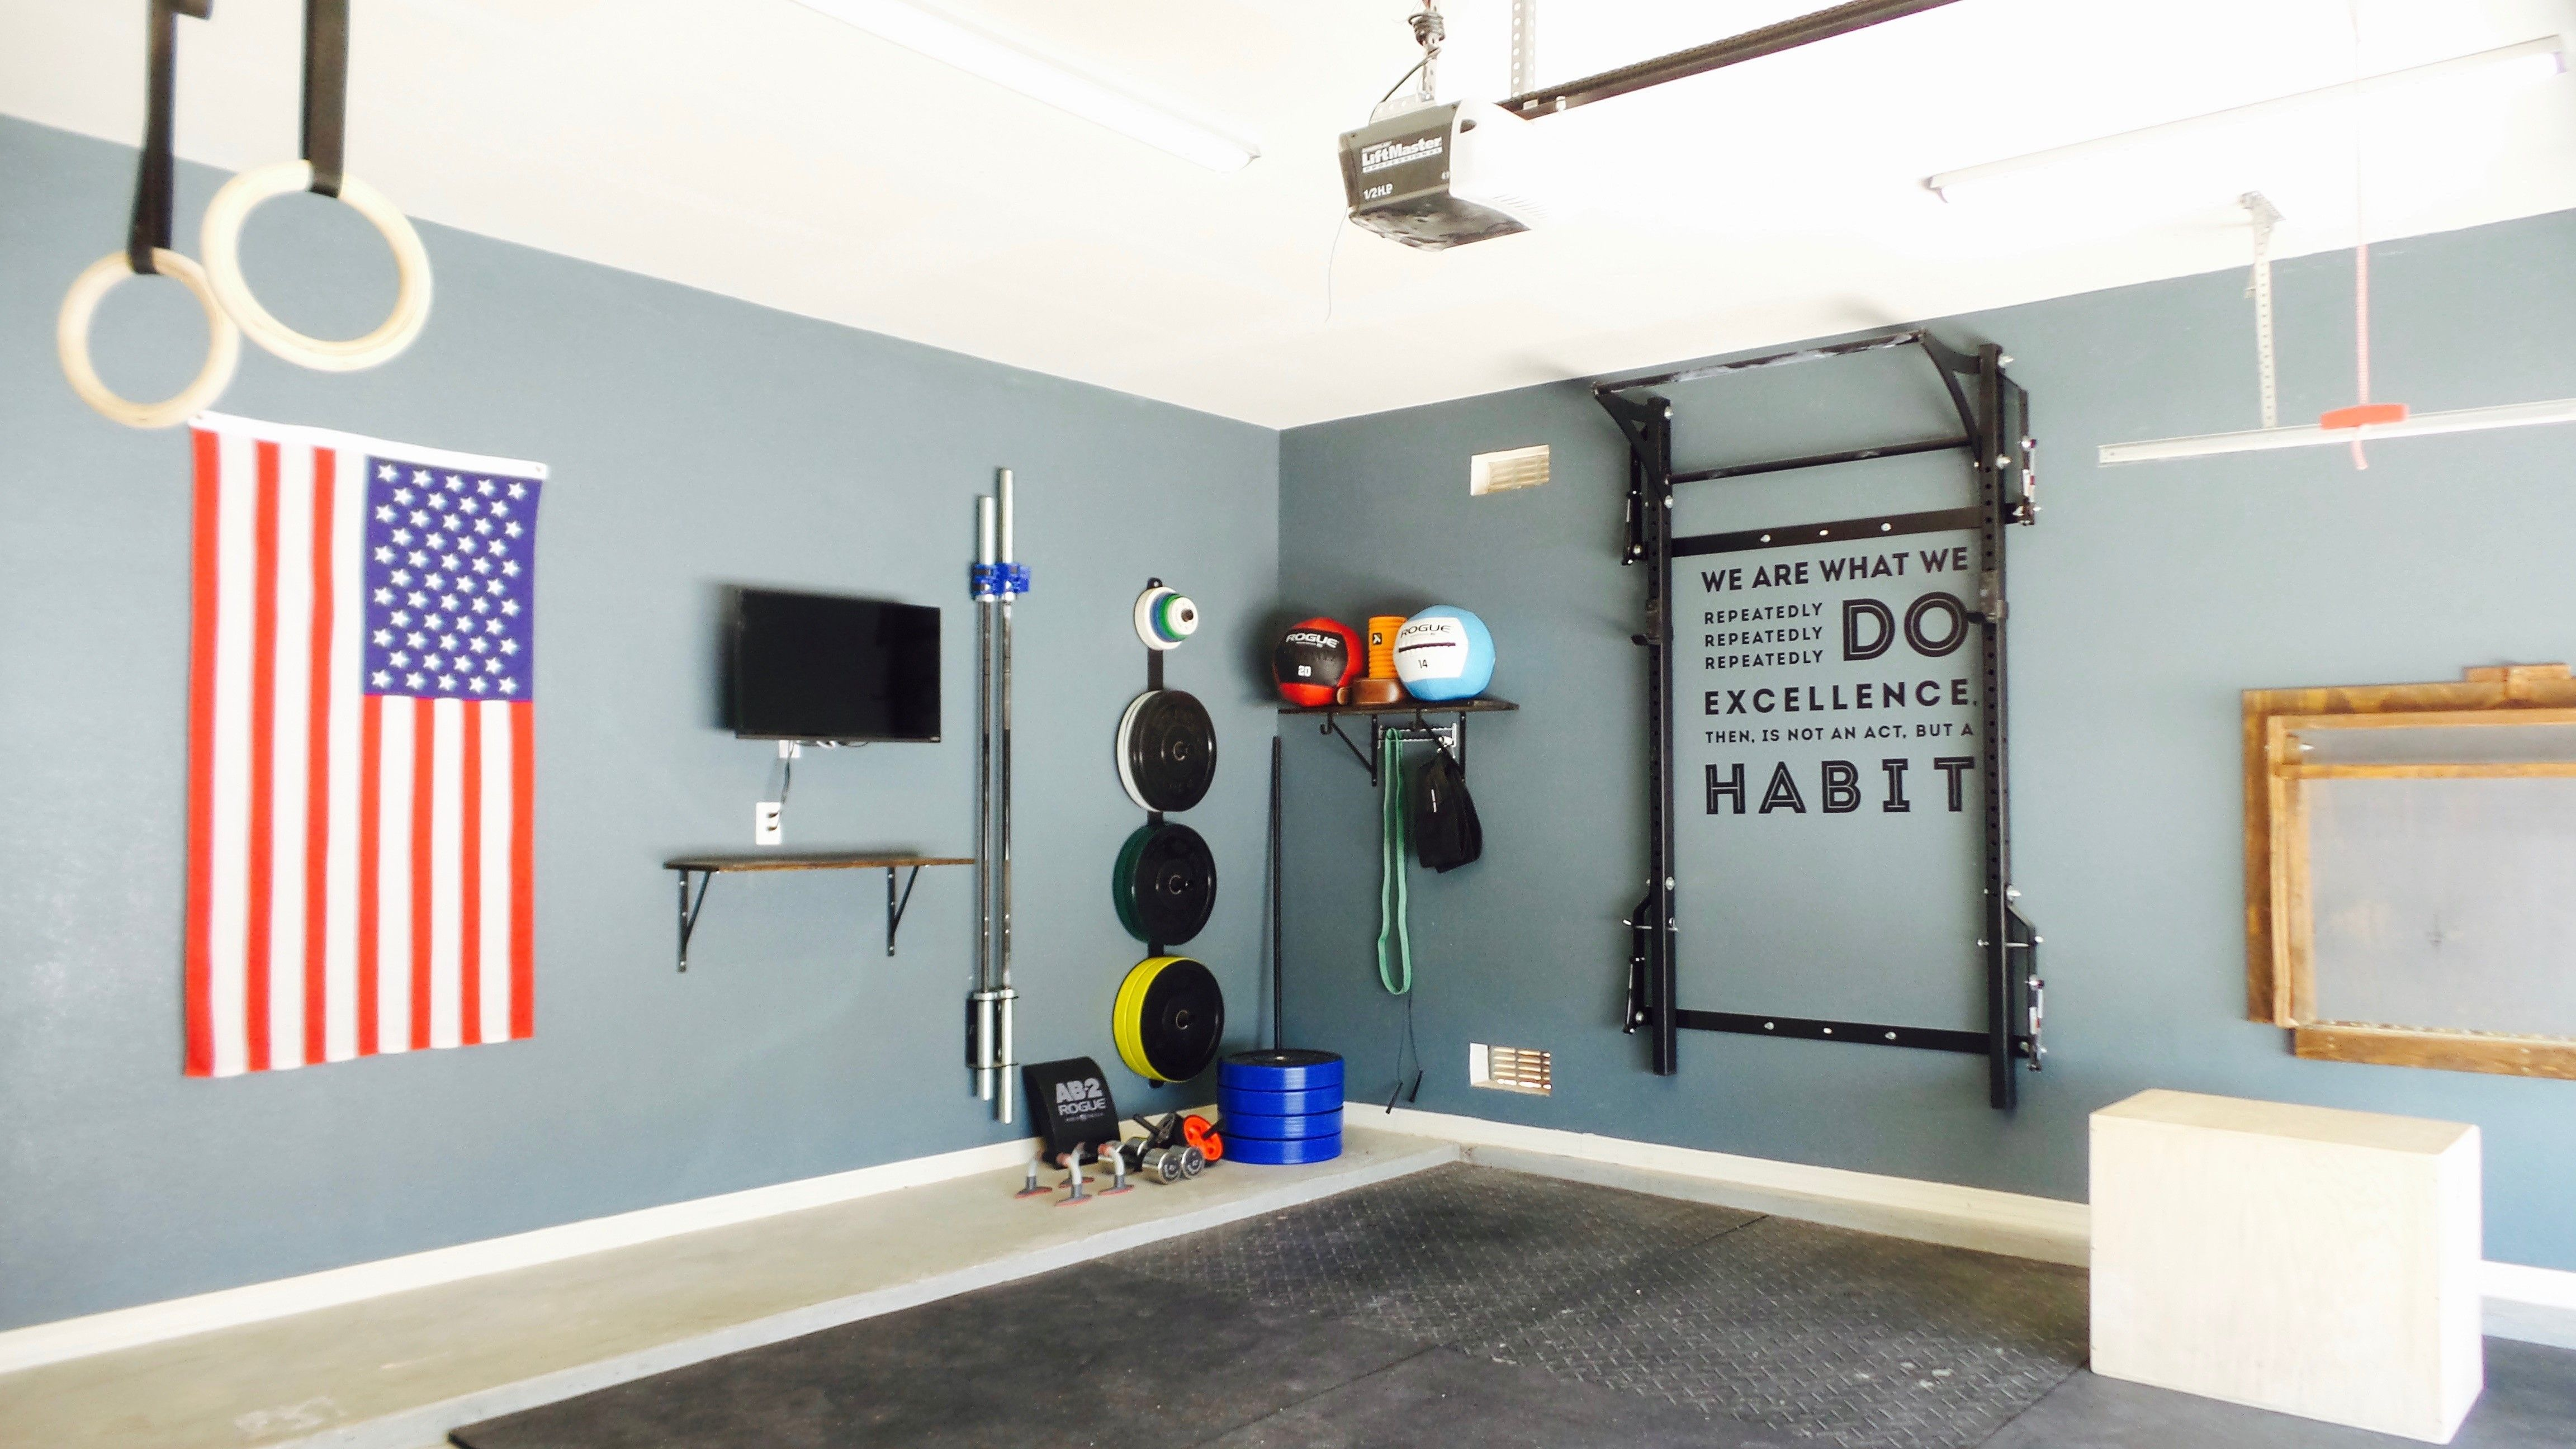 Clean home gym equipped with the prx profile rack and